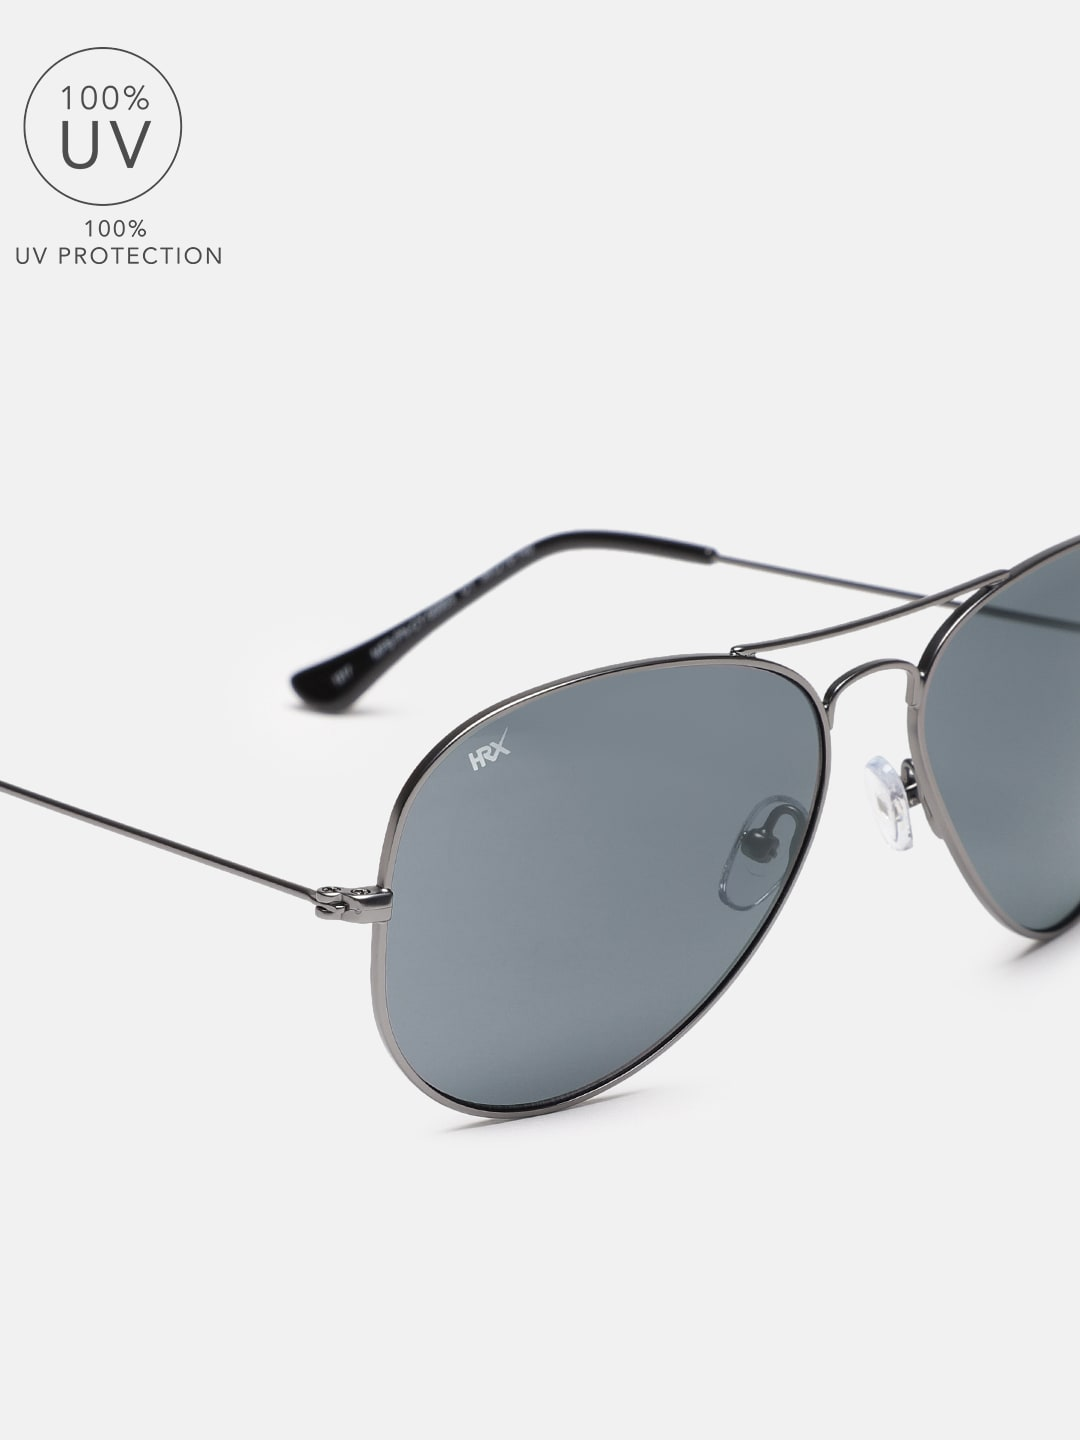 e9e3d4488c7ee Sunglasses - Buy Sunglasses for Men and Women Online in India